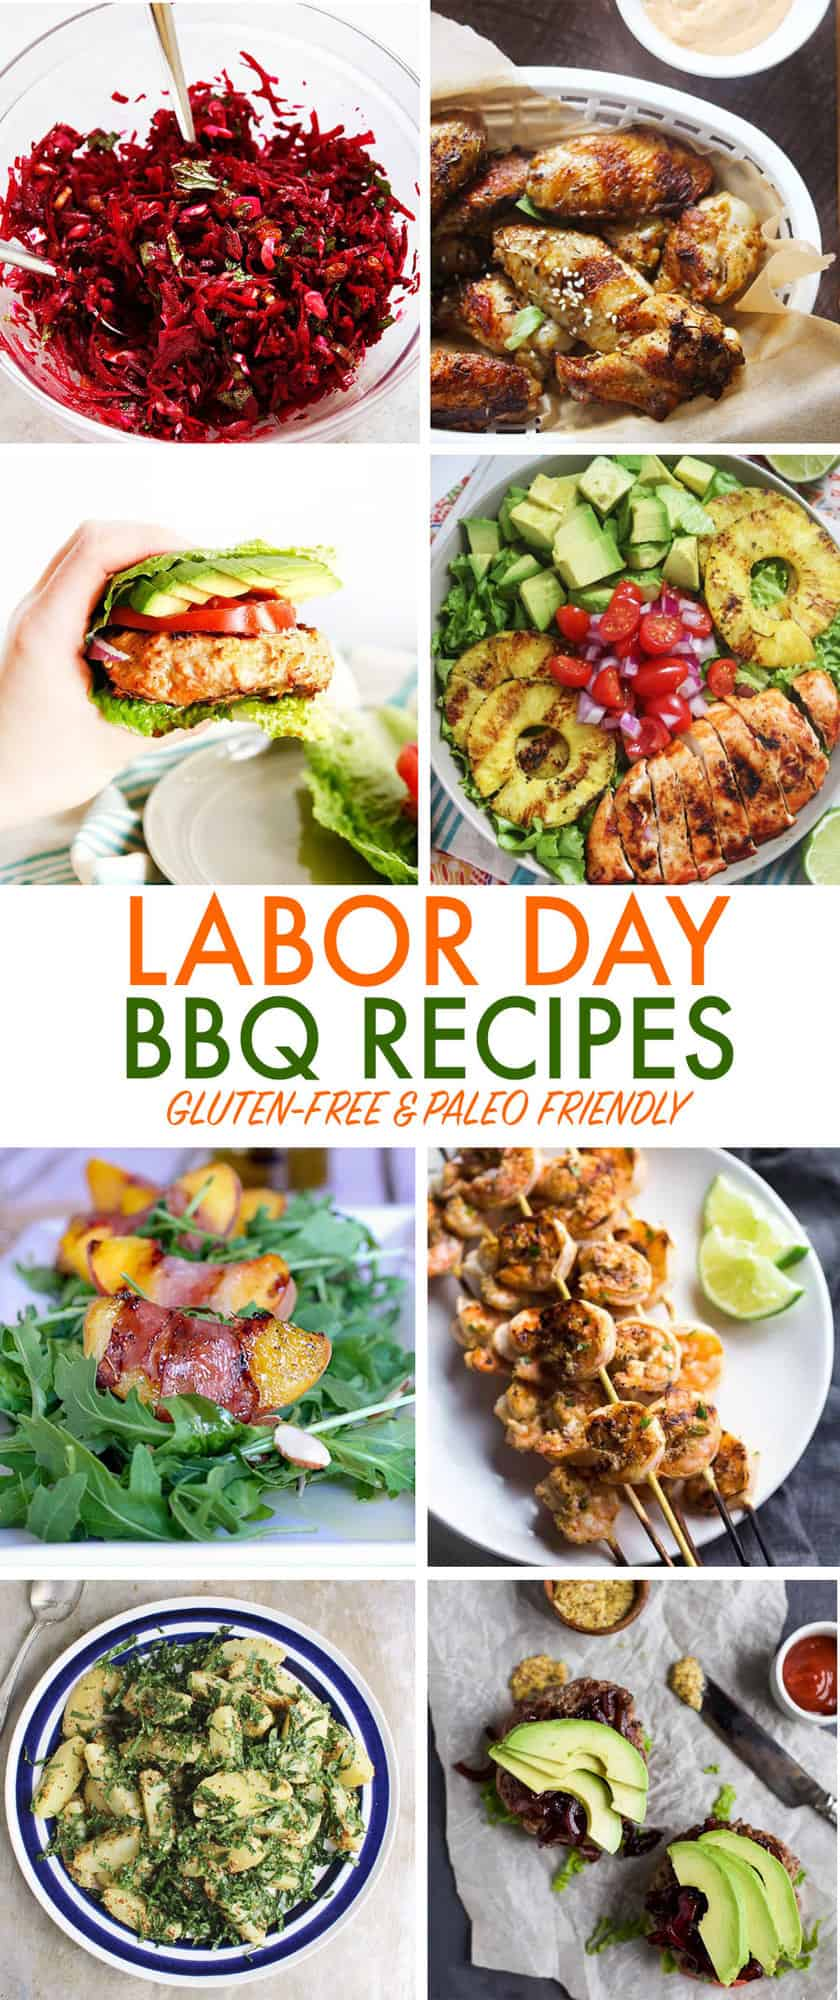 Labor Day Paleo Recipes